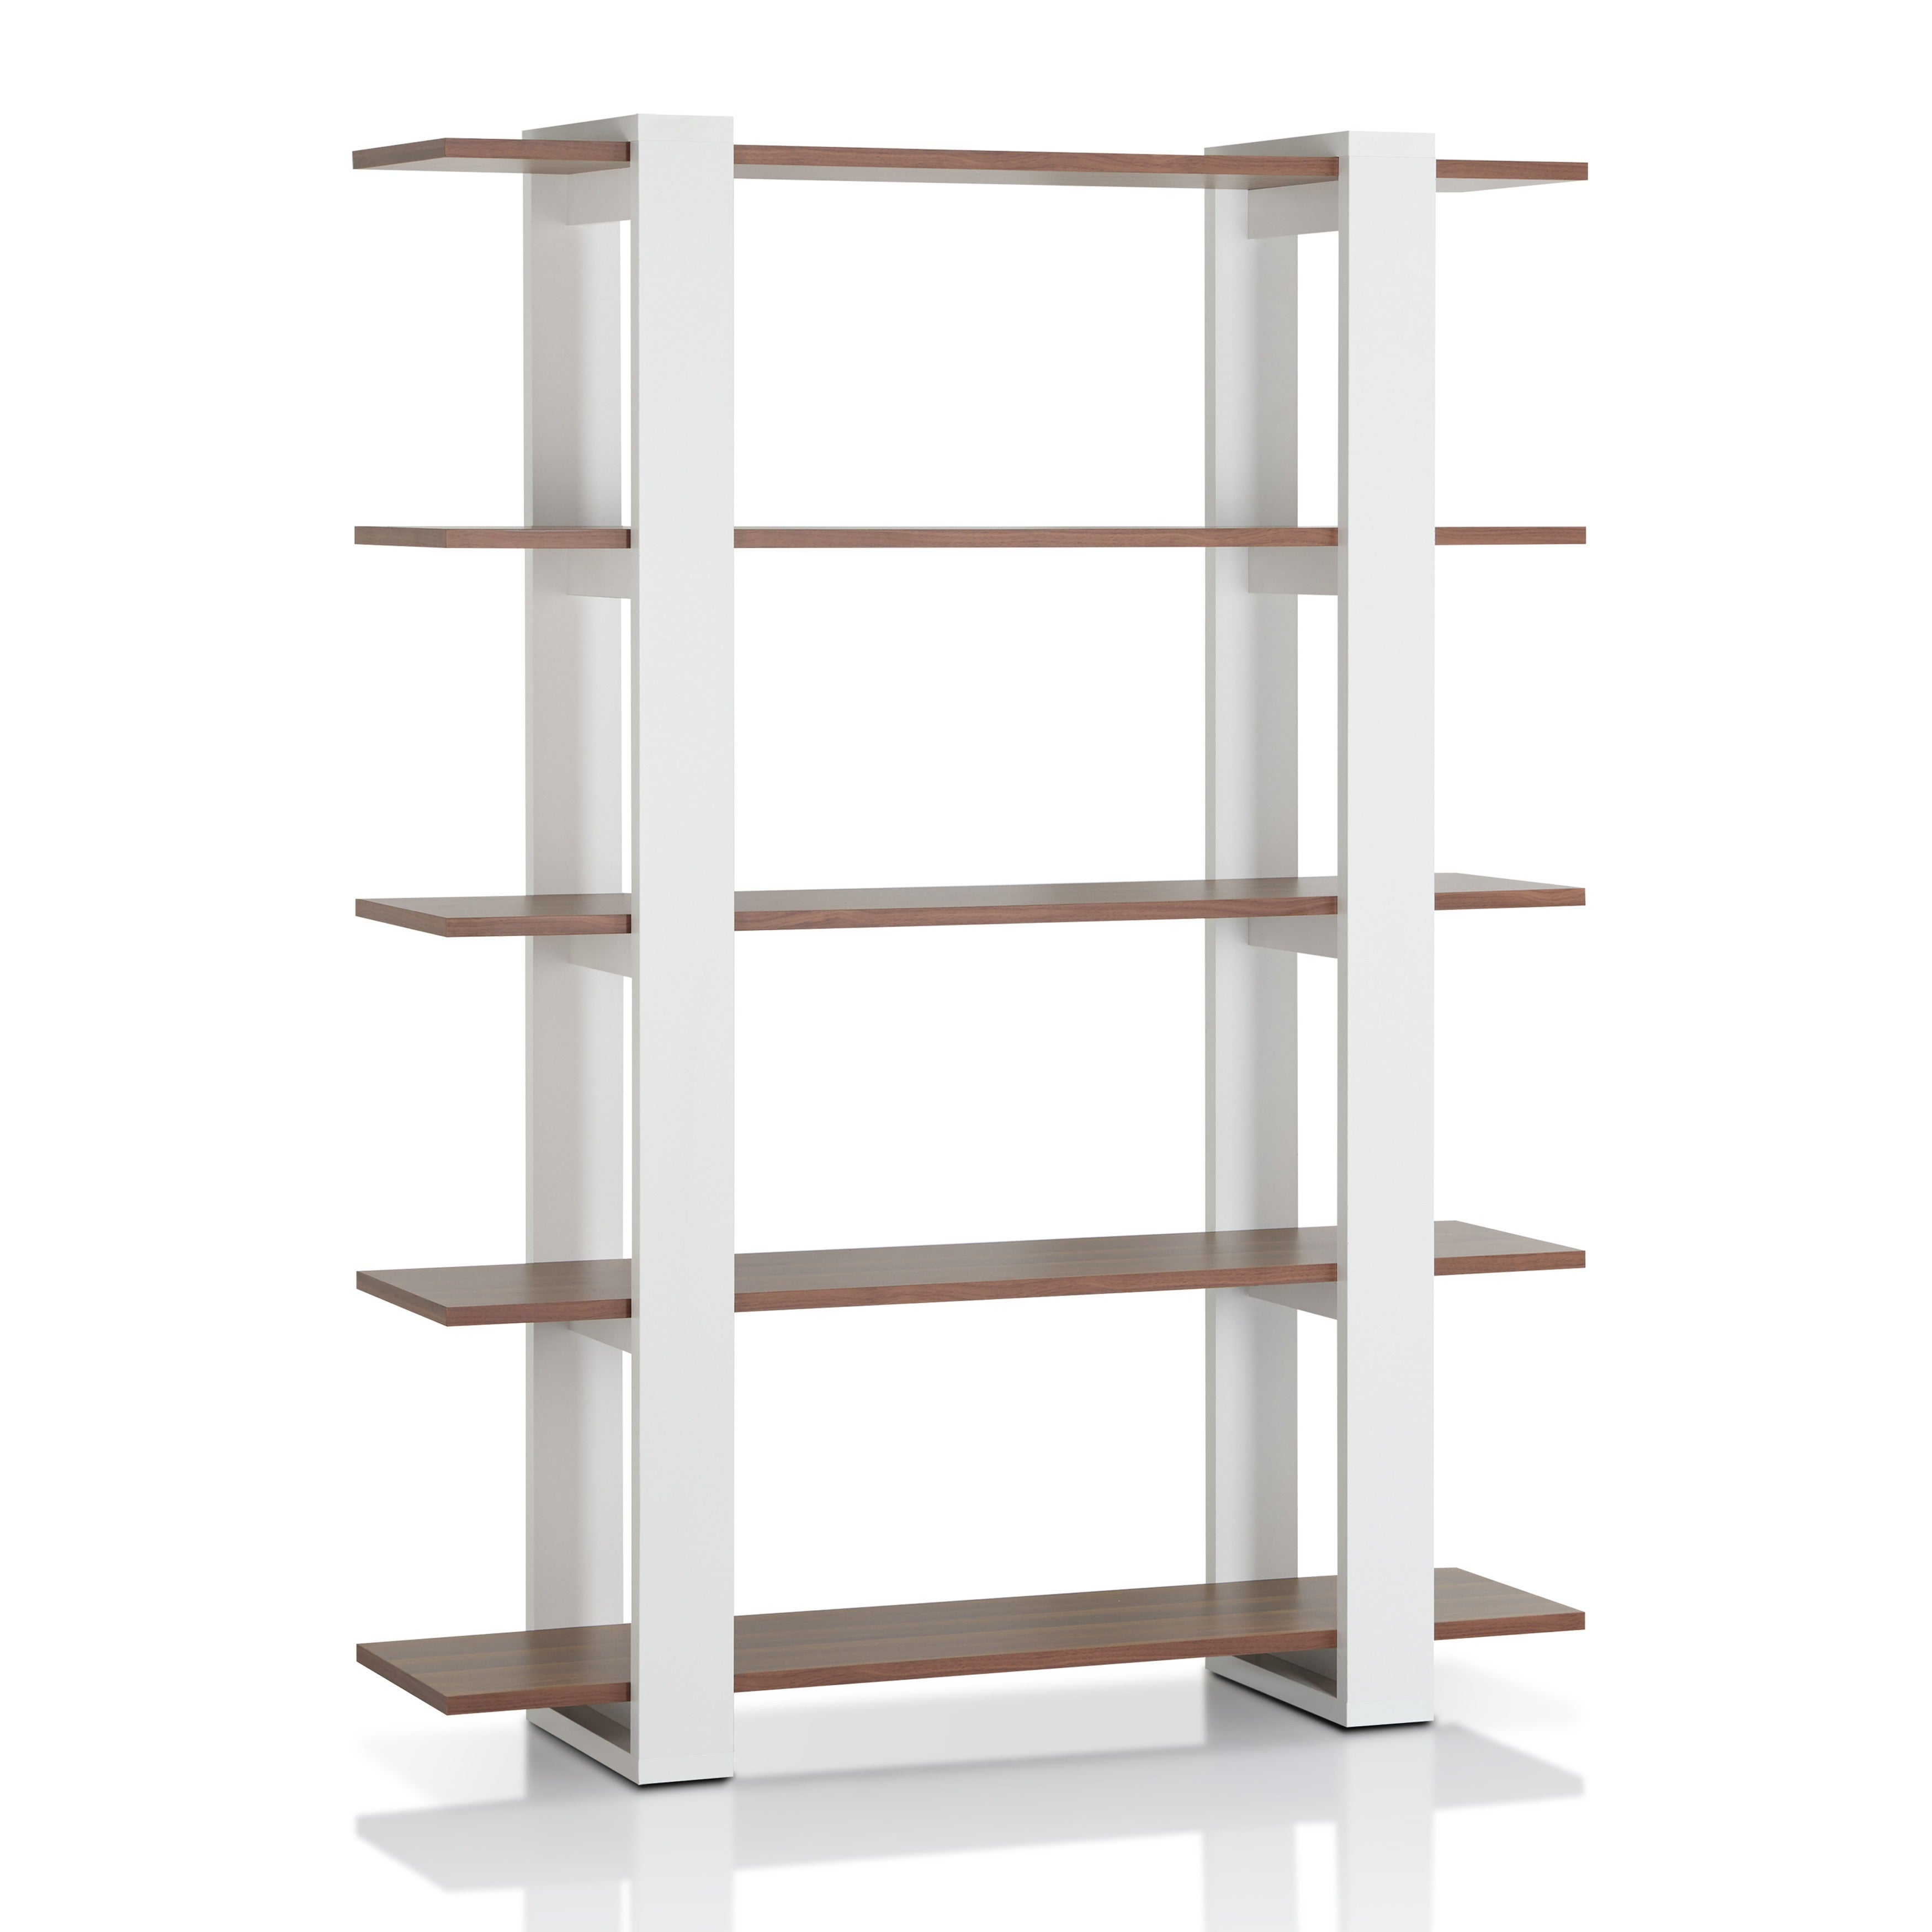 Exceptional Furniture Of America Haven 5 Tier Walnut/White Wood Display Bookshelf    Free Shipping Today   Overstock.com   13133305